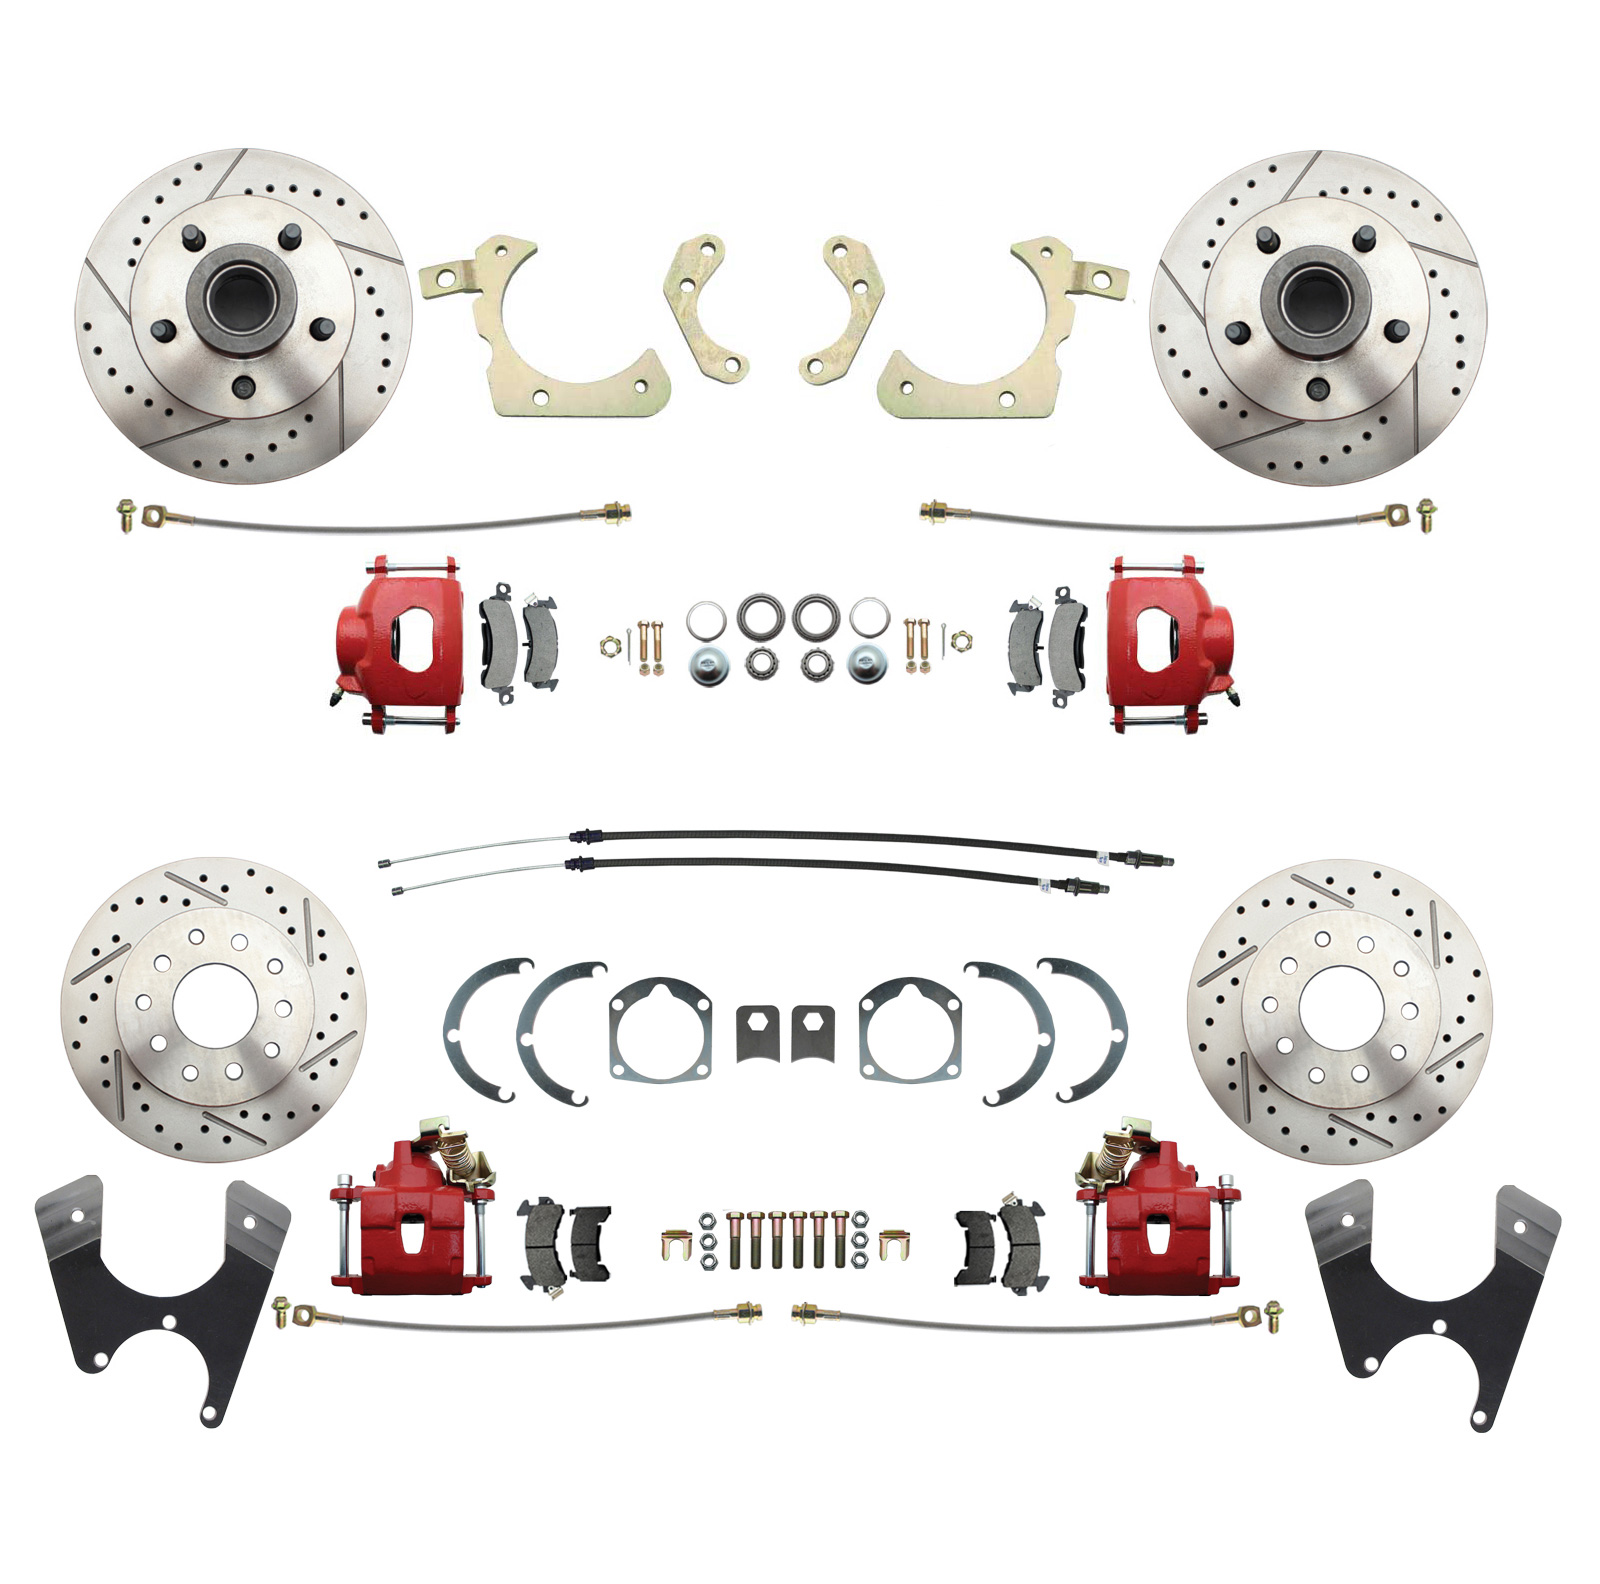 1955-1958 GM Full Size Front & Rear  Disc Brake Kit Red Powder Coated Calipers Drilled/Slotted Rotors (Impala, Bel Air, Biscayne)